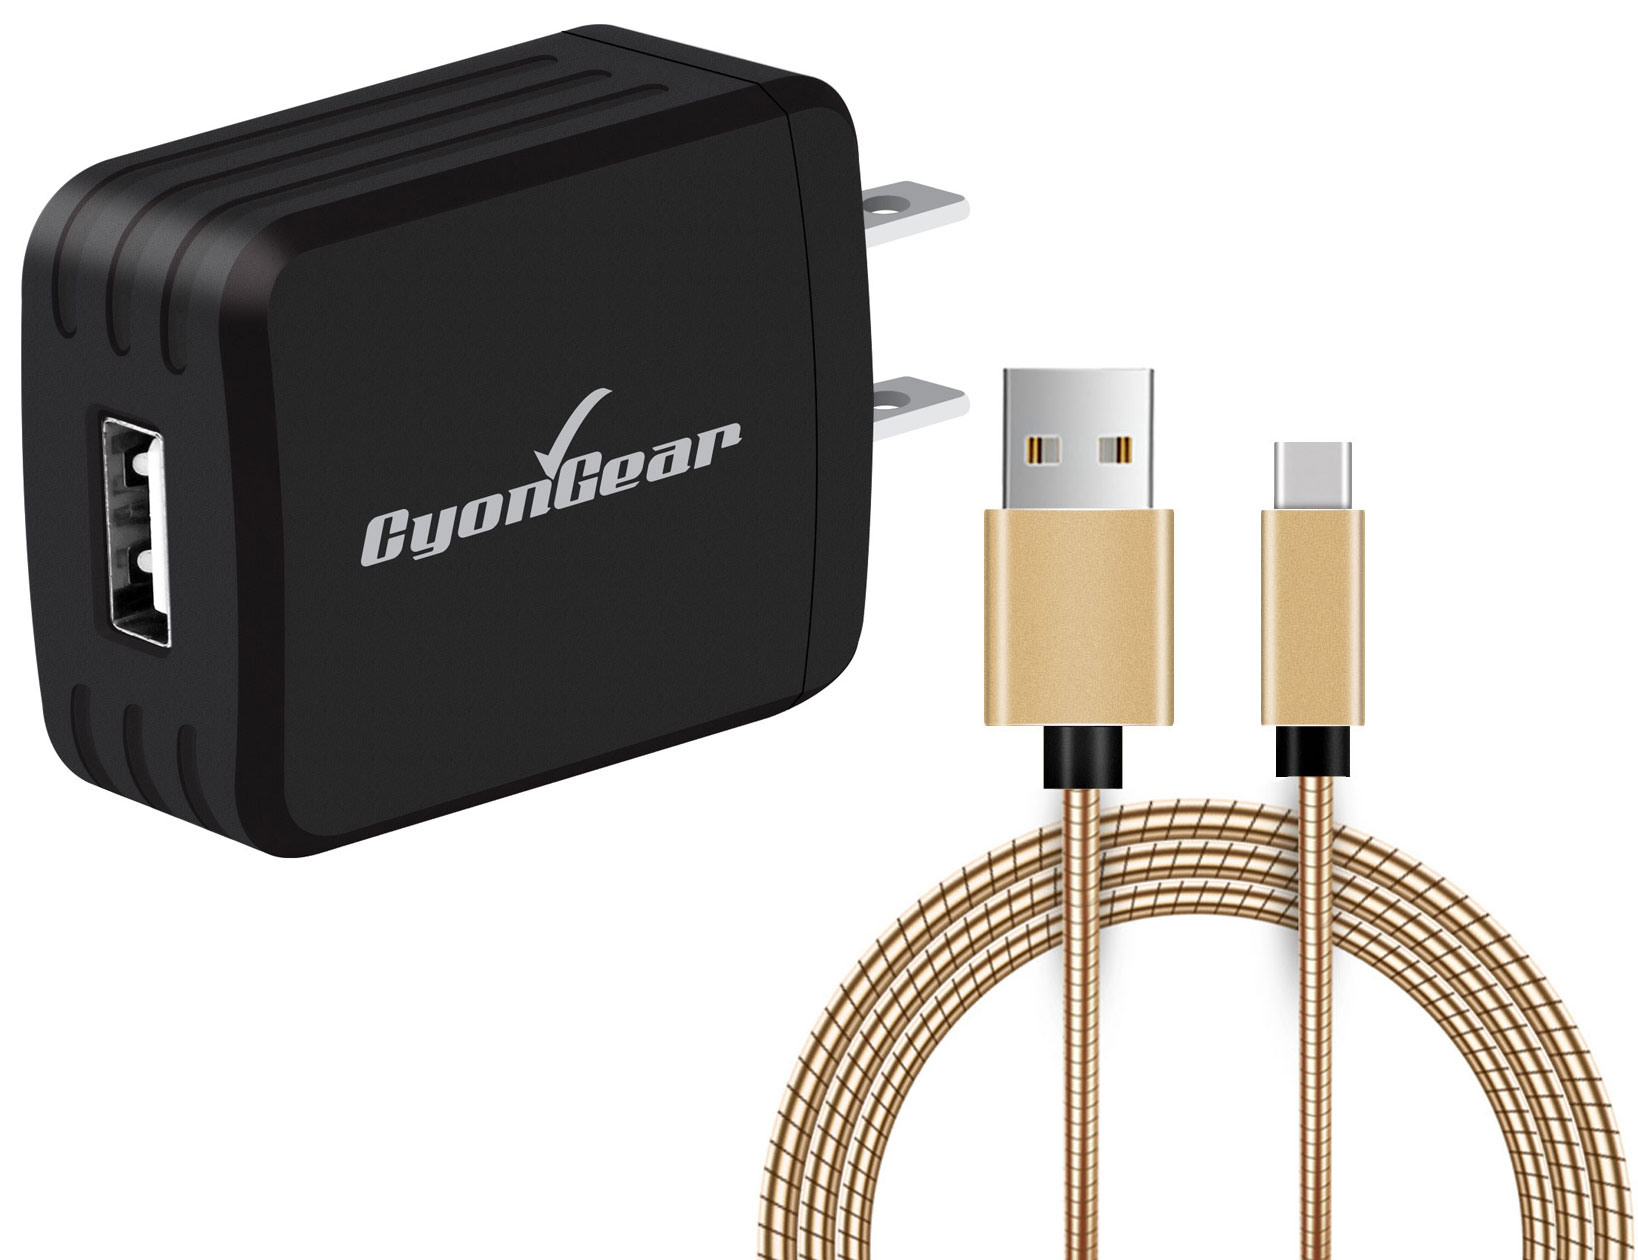 Motorola Edge Plus USB TypeC Wall Charger Black 10ft Gold Braided Cable